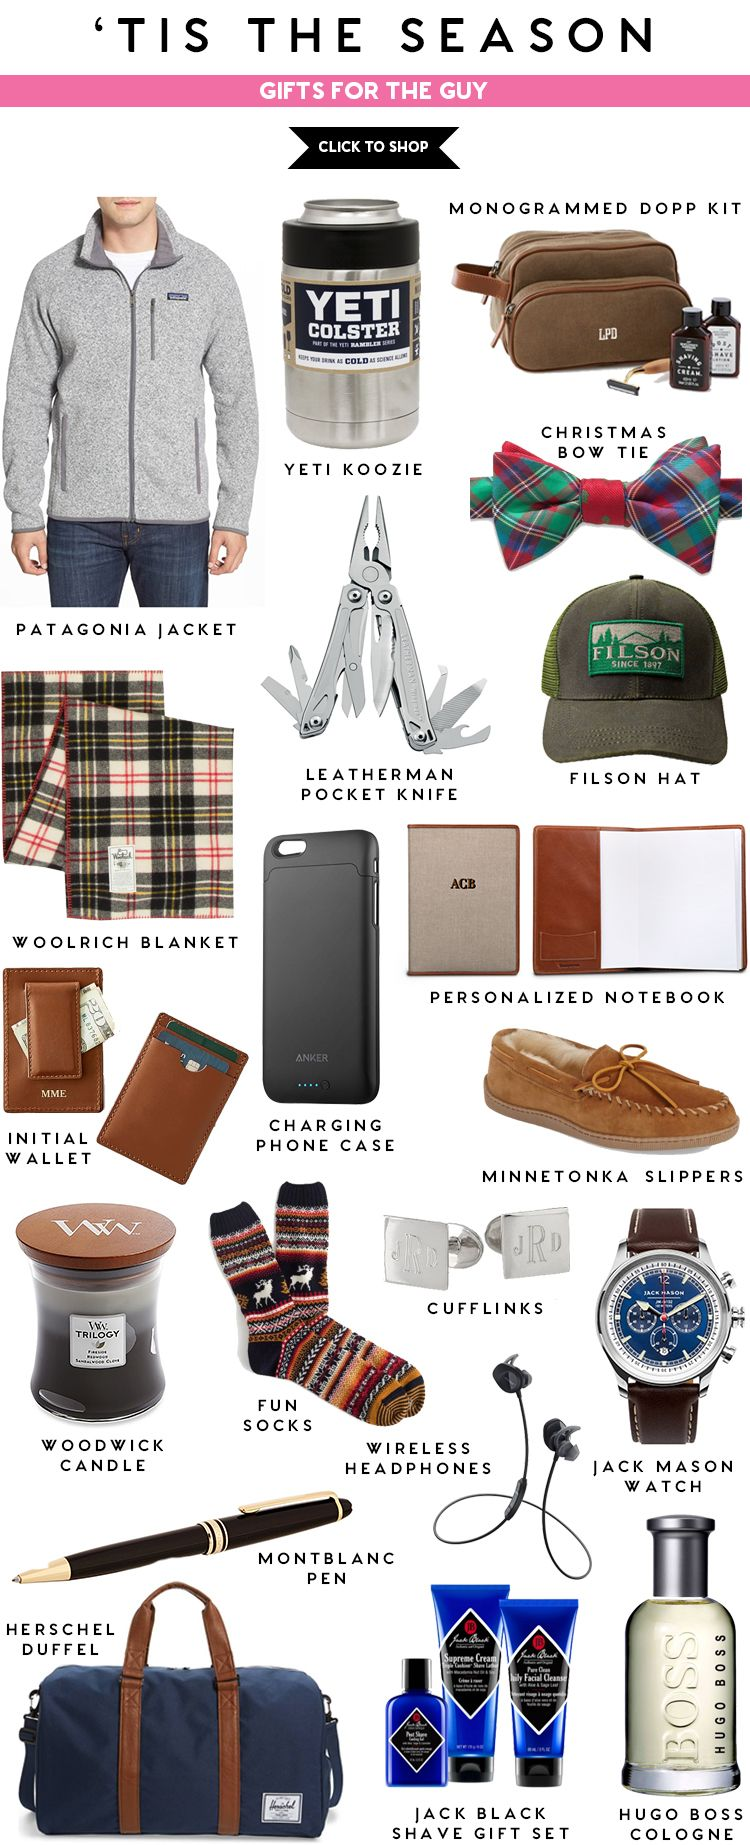 Tis The Season Gifts For The Guy Anniversary Gifts For Him